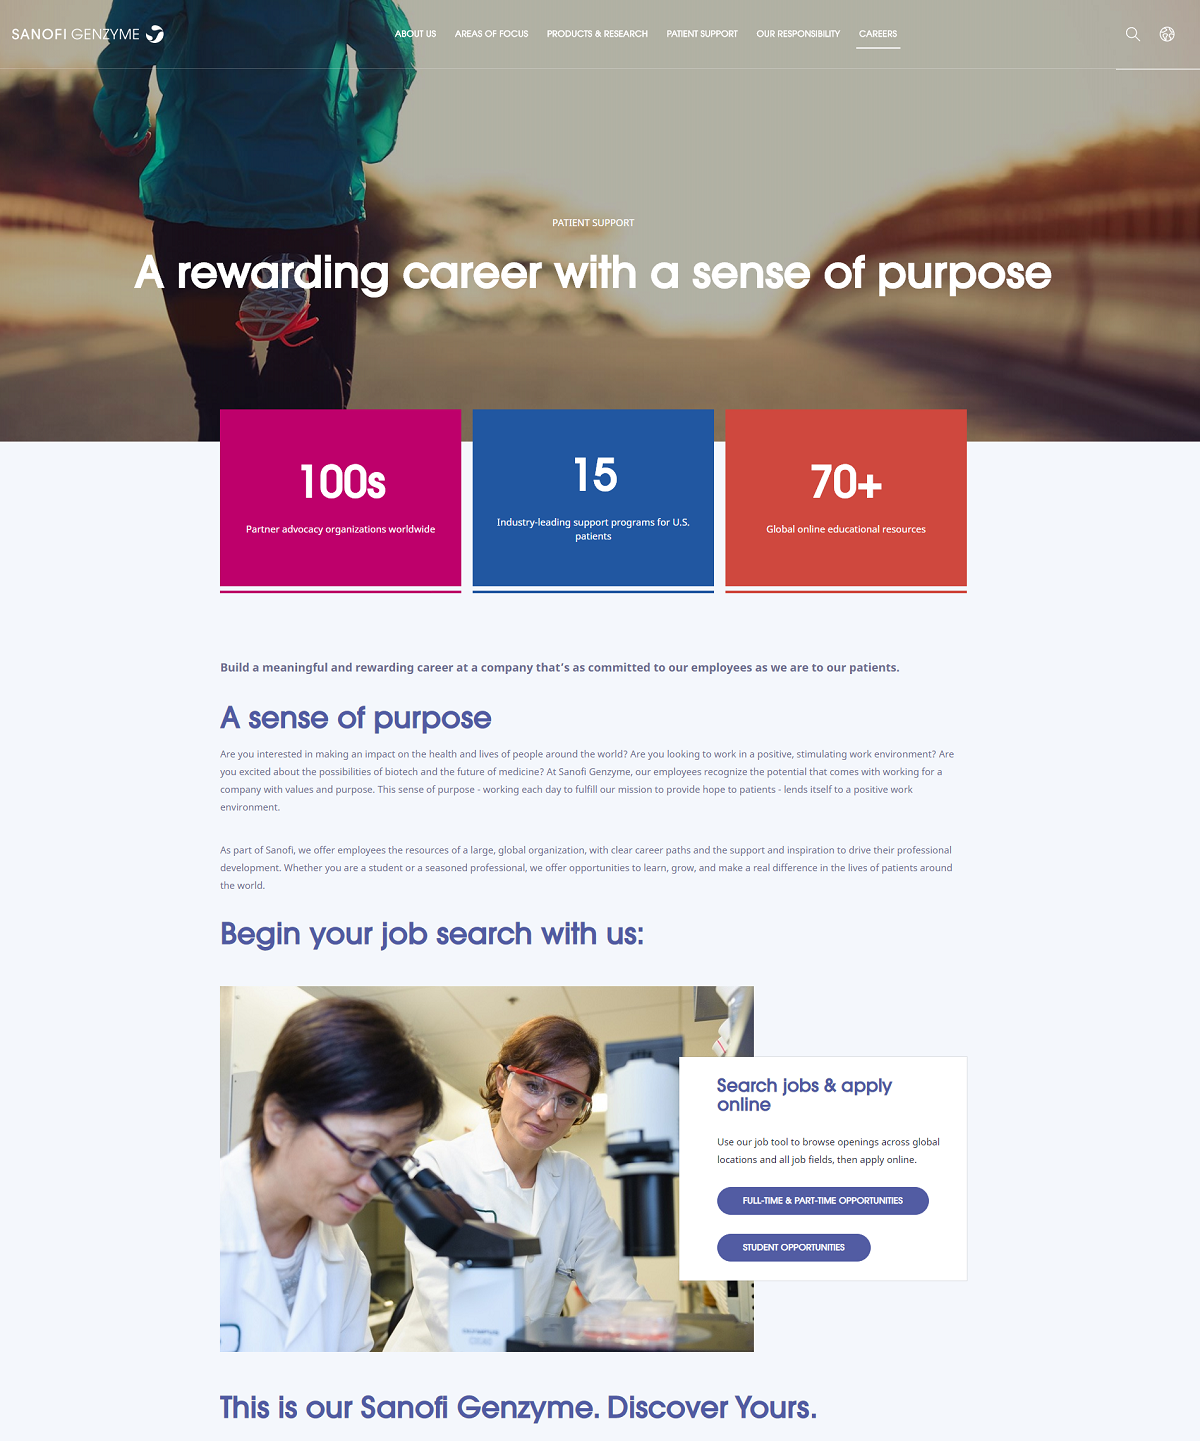 sanofi genzyme career page